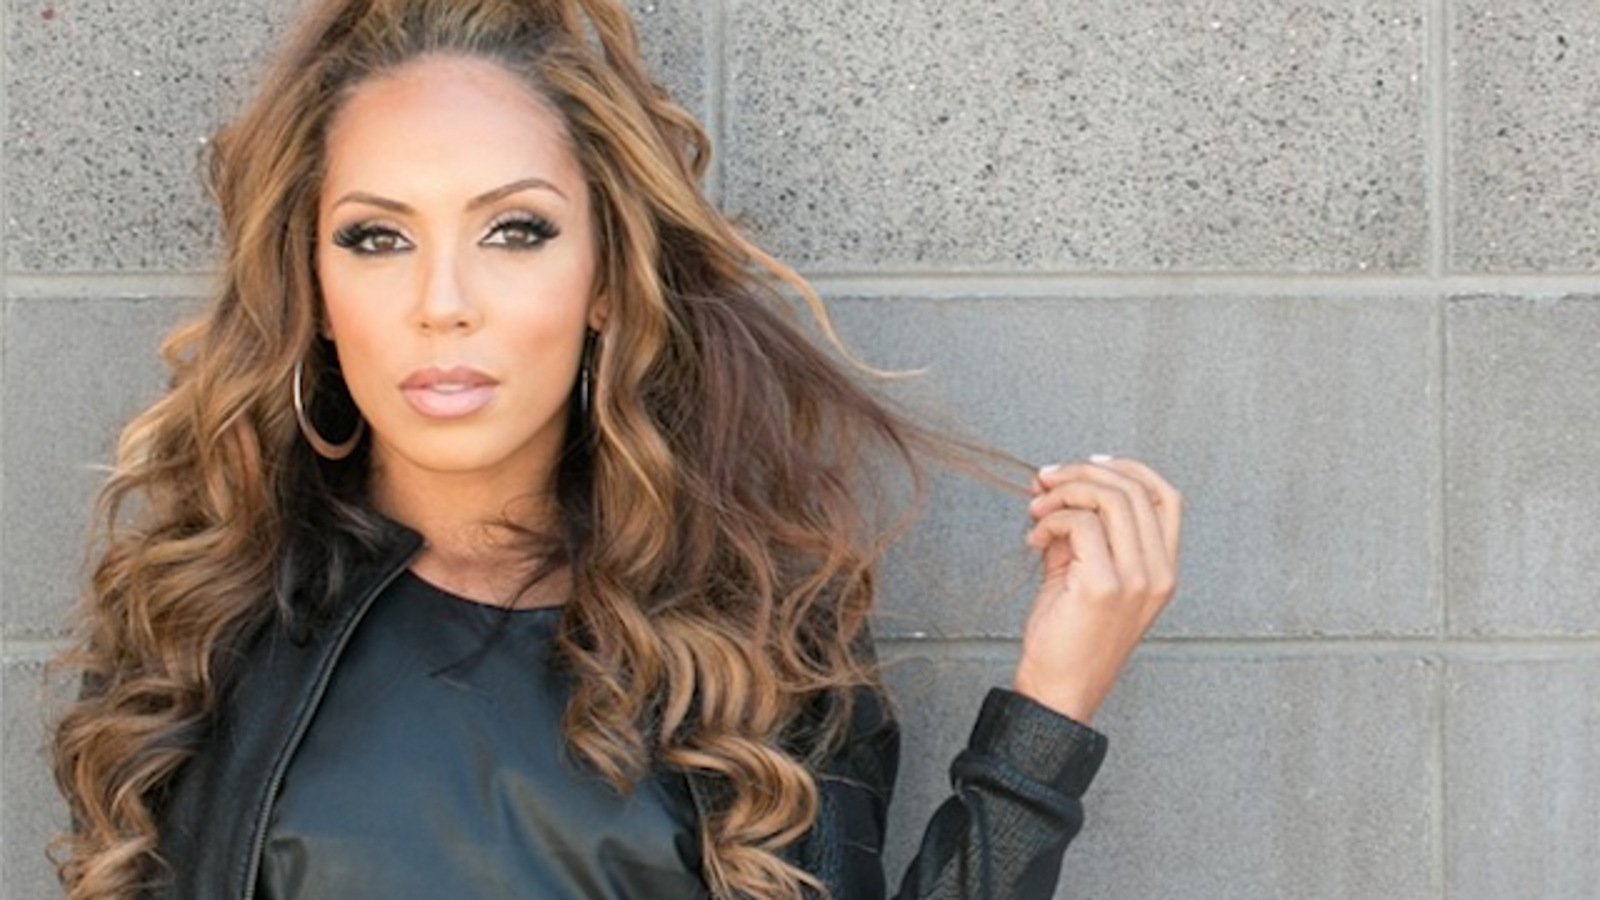 Stephanie Moseley hit